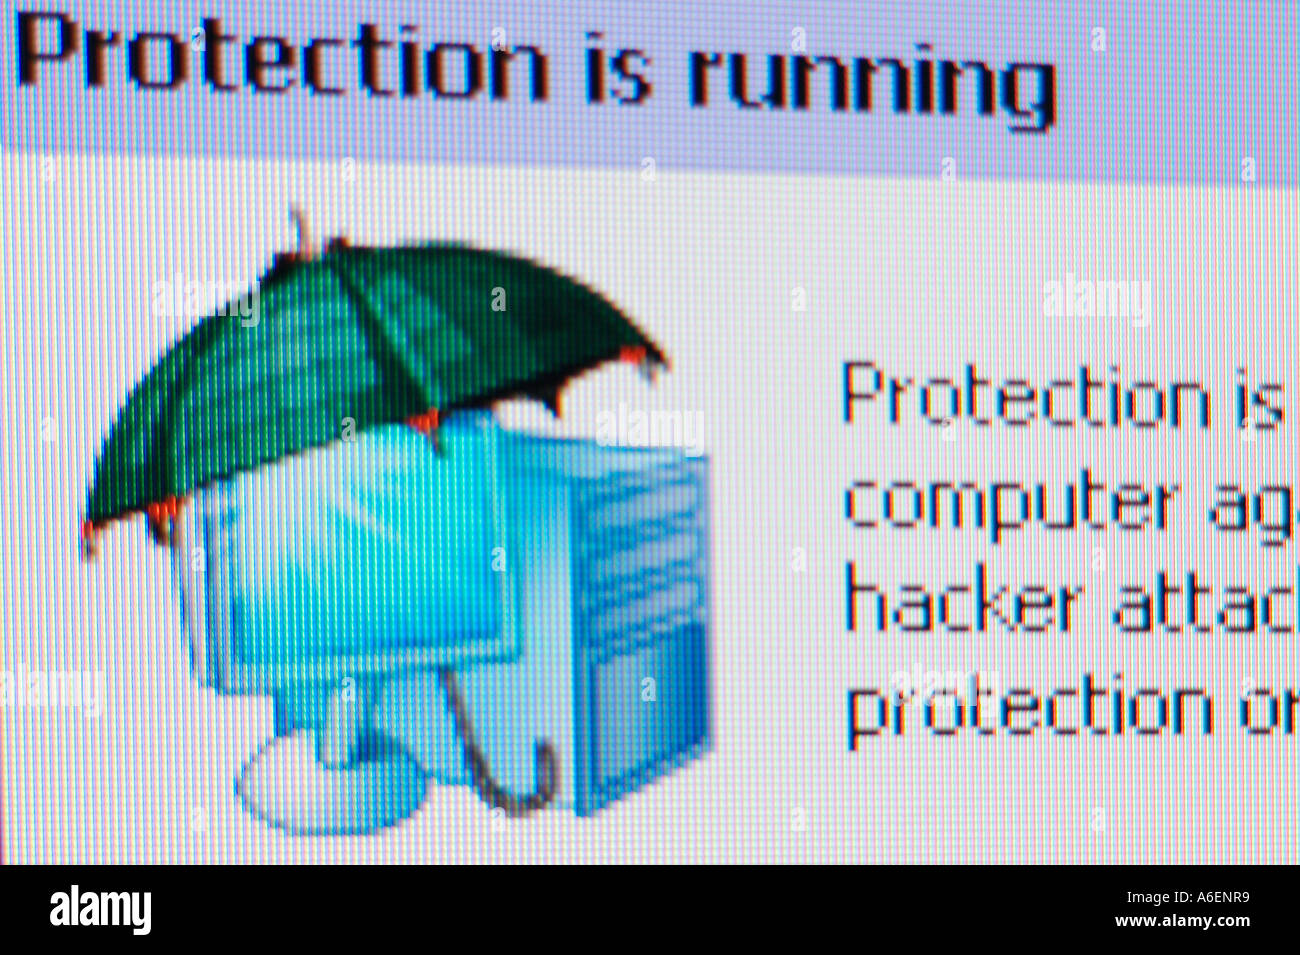 Screenshot Protection is running - Stock Image